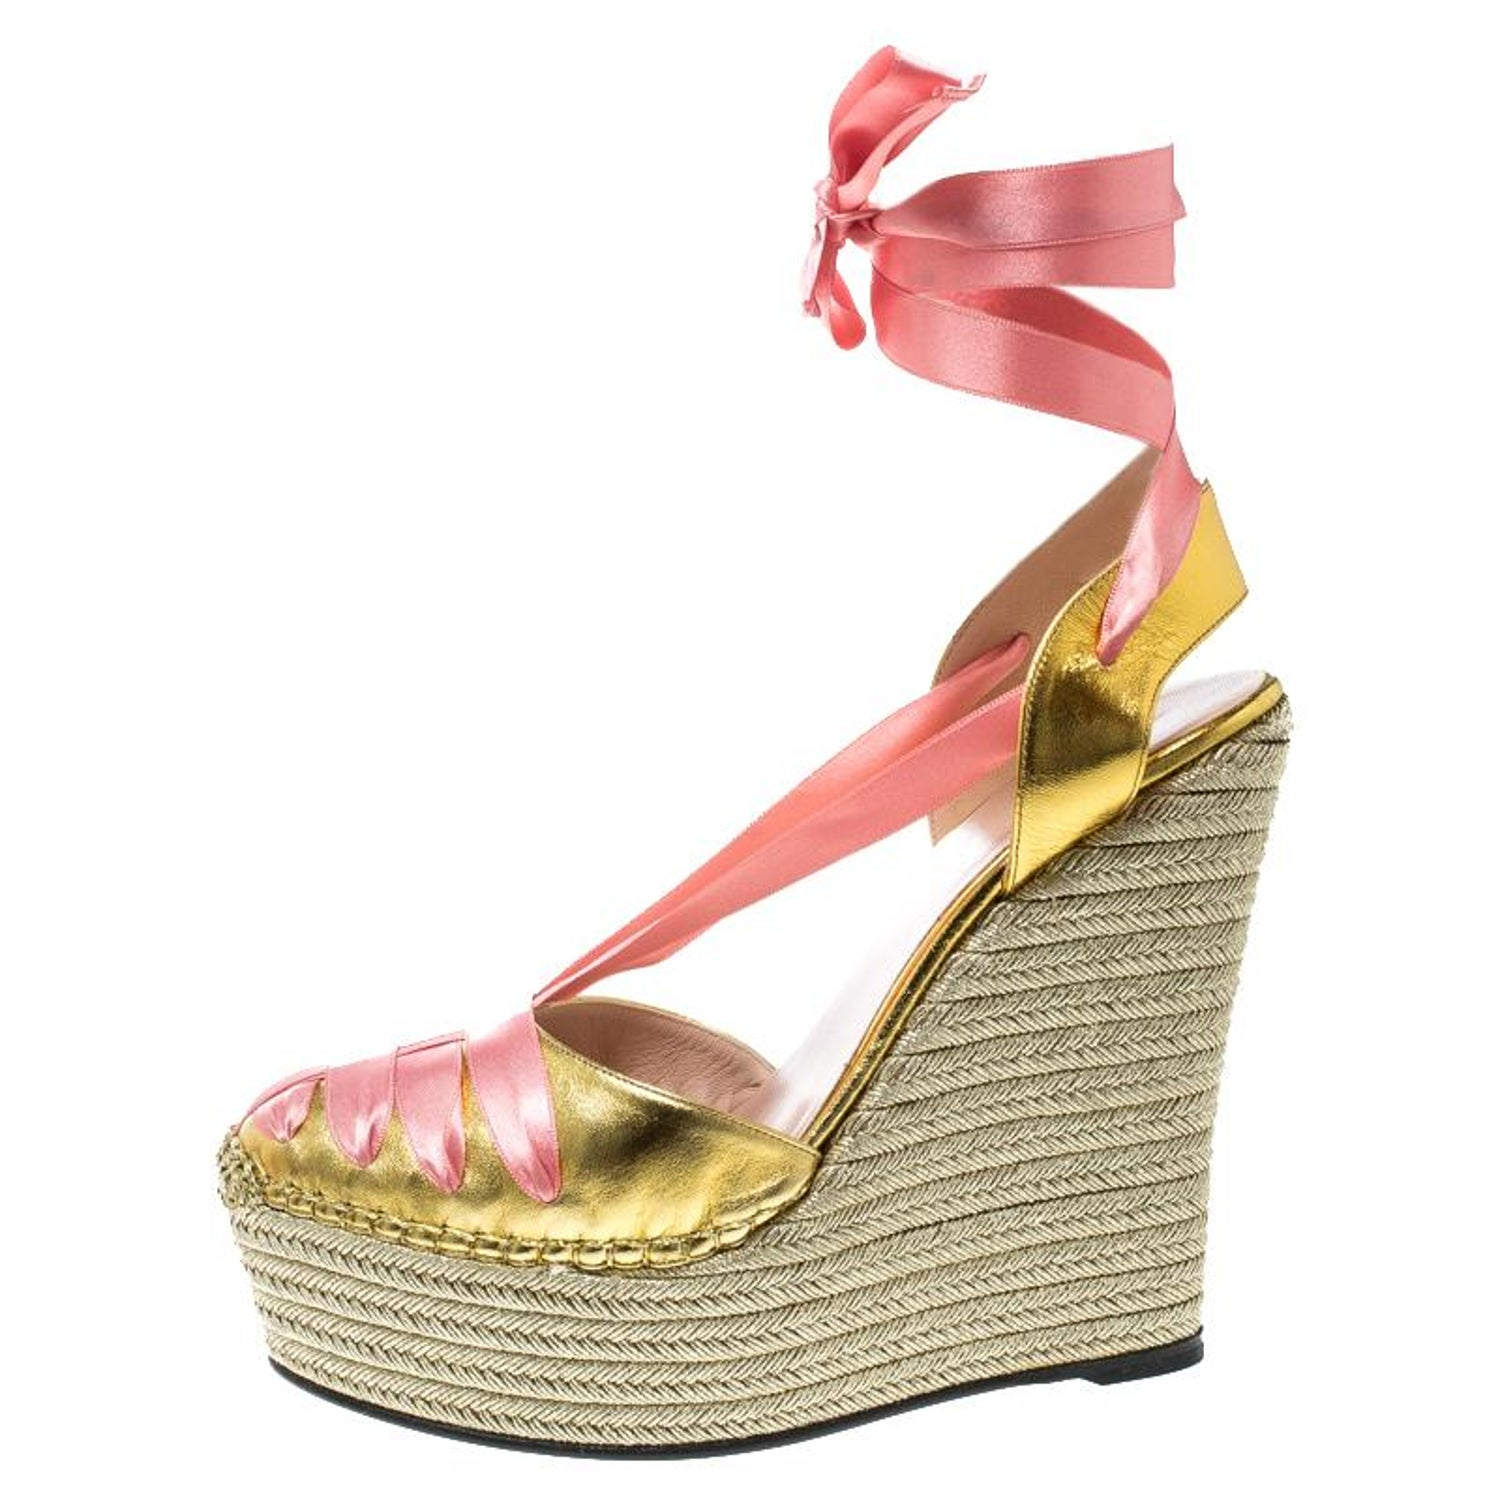 1ecf6597f5c Gucci Gold Pink Leather and Satin Alexis Wrap Platform Wedge Sandals Size  39 For Sale at 1stdibs